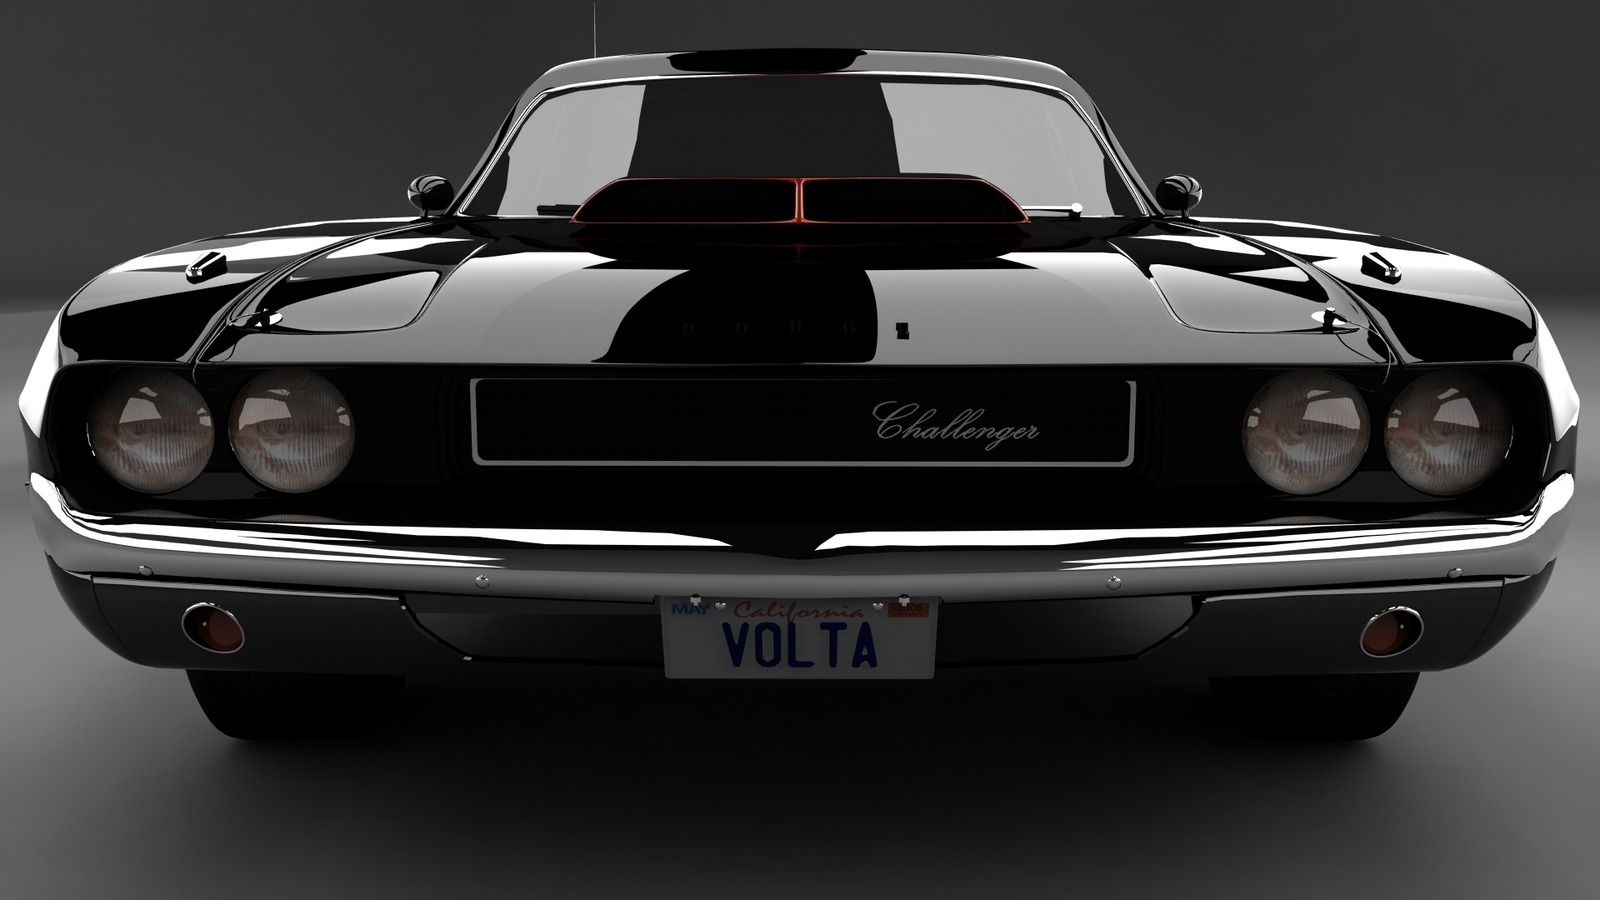 Classic Challenger Wallpapers Top Free Classic Challenger Backgrounds Wallpaperaccess